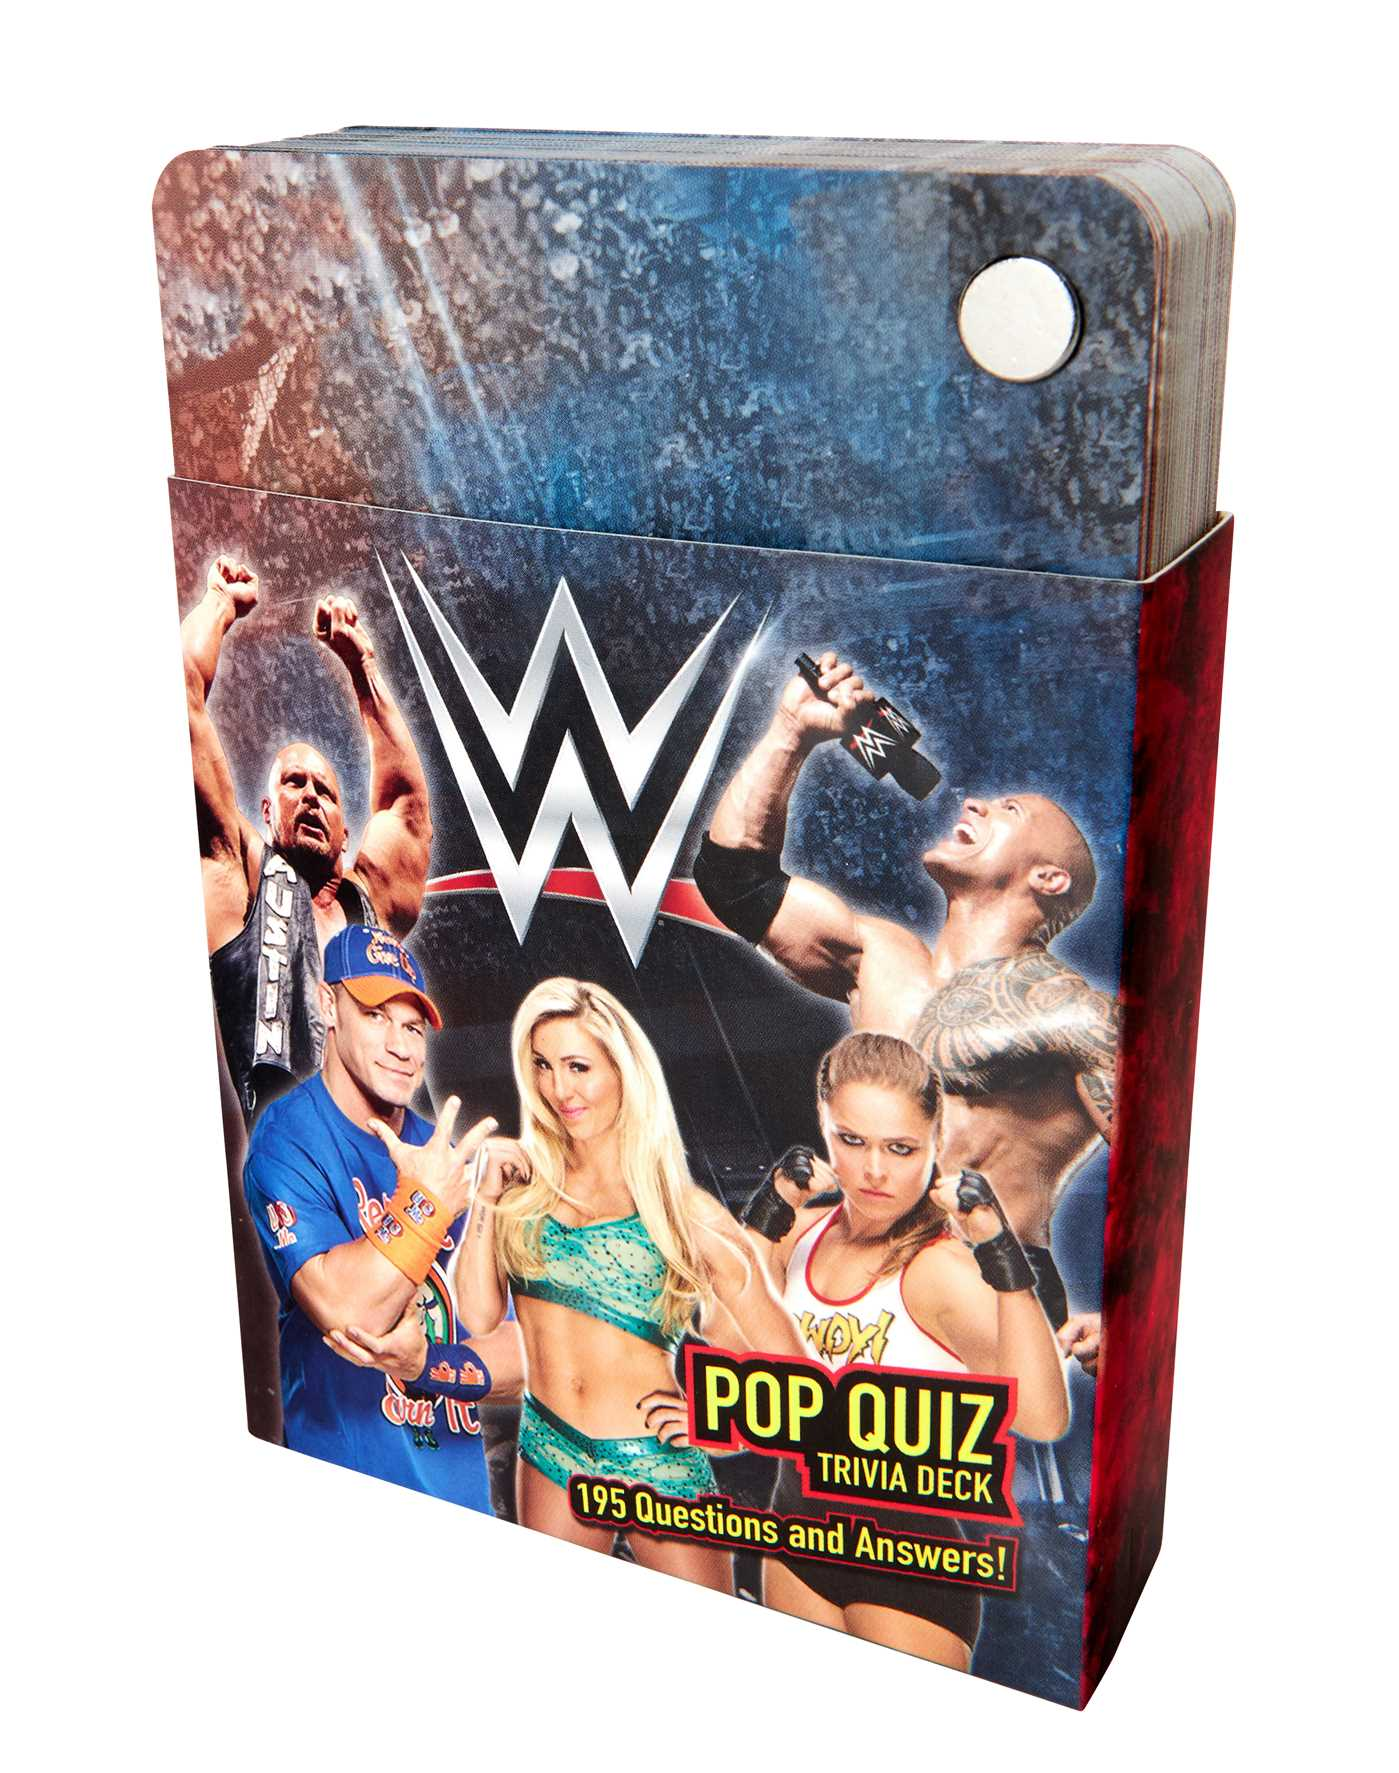 Wwe pop quiz trivia deck 9781683834410 hr